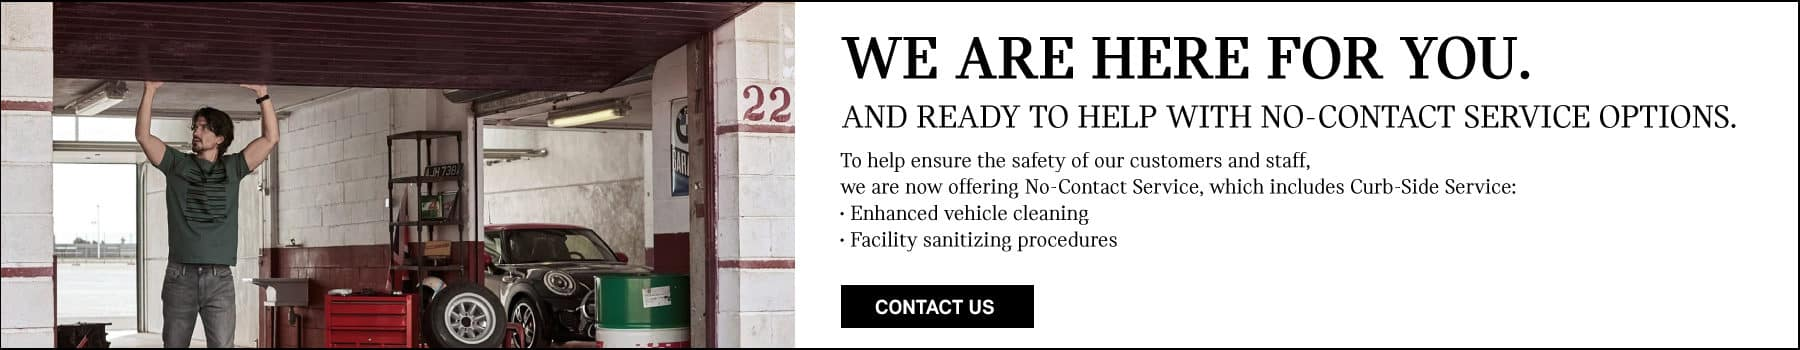 WE ARE HERE FOR YOU. Now offering no-contact service including curb side service.